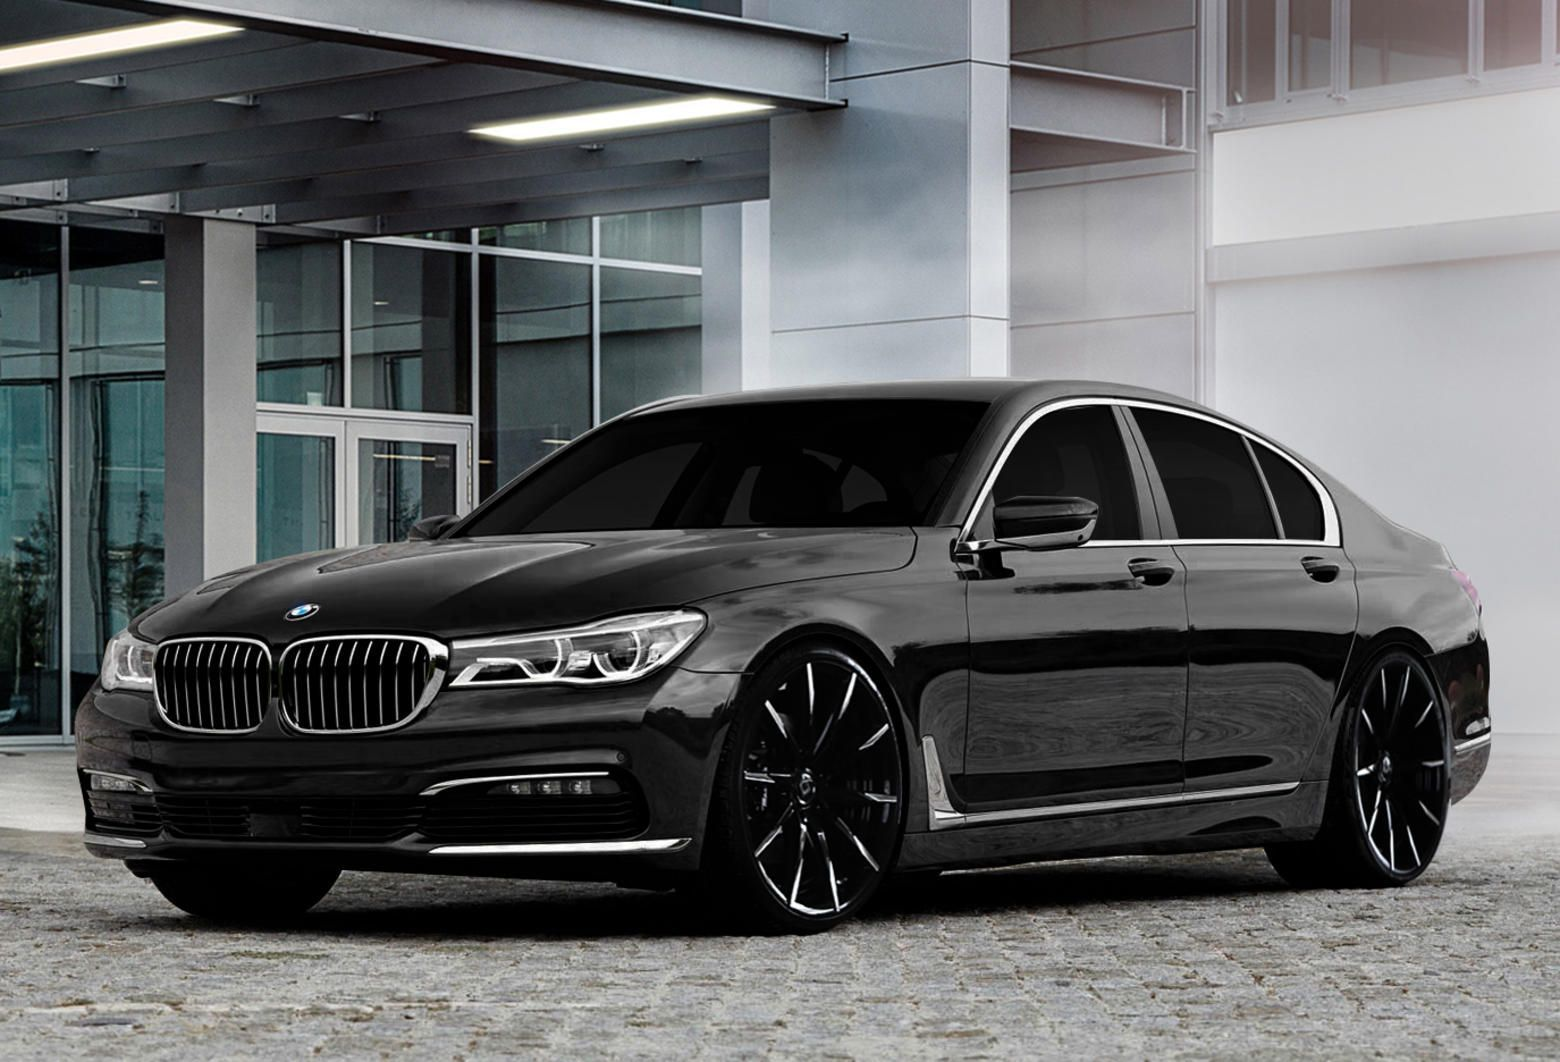 Lexani Wheels The Leader In Custom Luxury Wheels 2016 Bmw 7